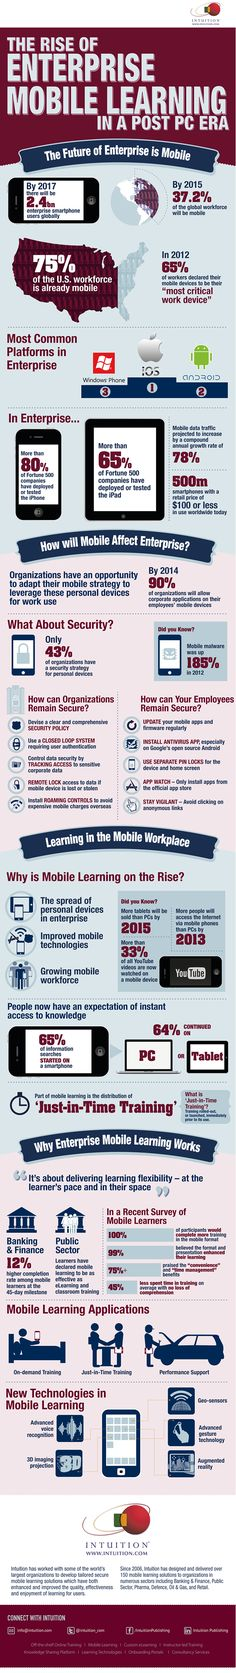 The Future of Enterprise Mobile Learning Infographic - e-Learning Infographicse-Learning Infographics